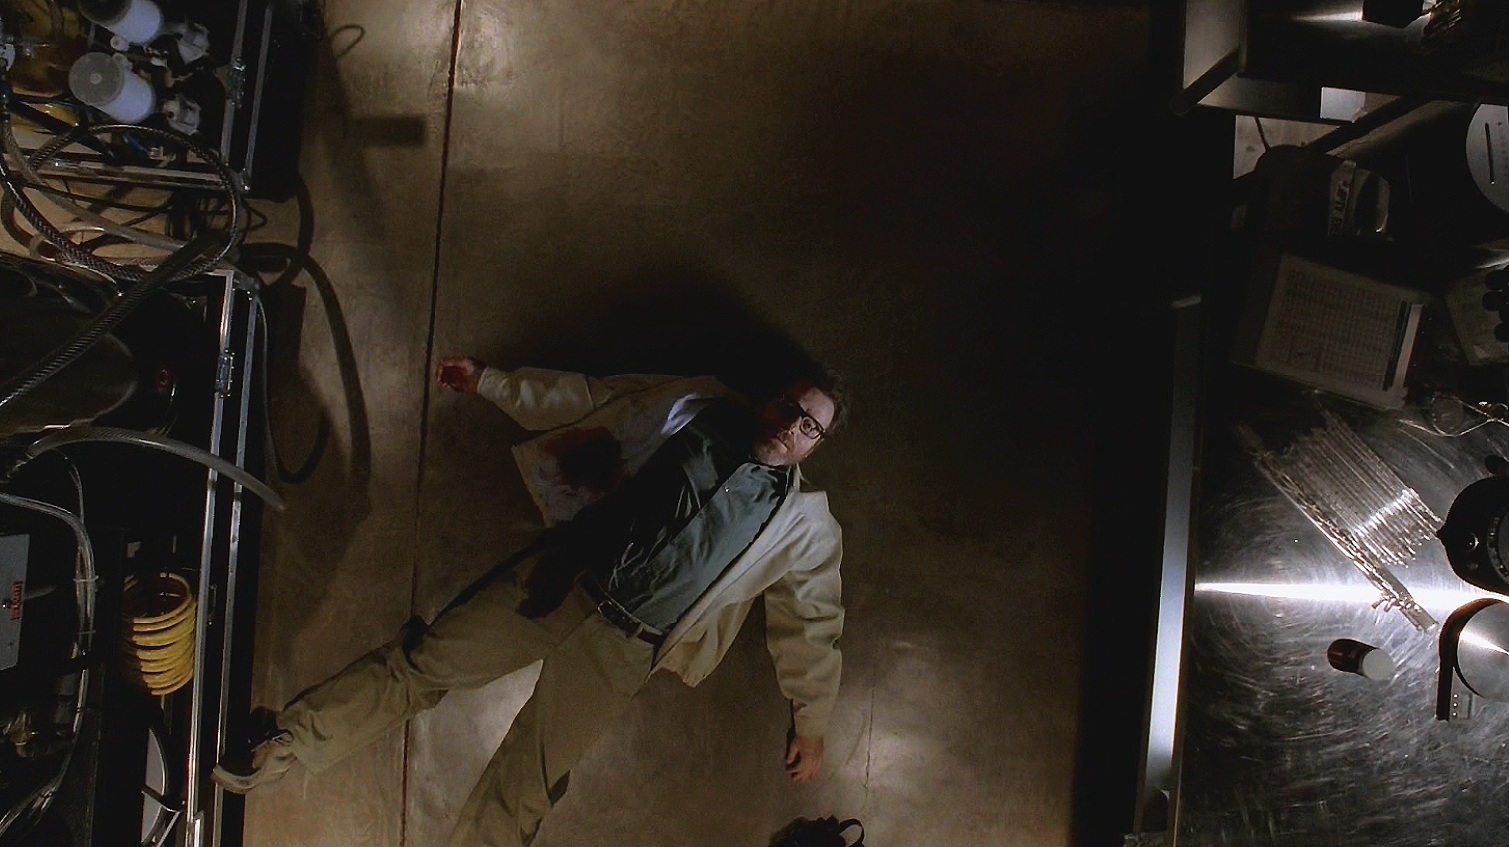 http://images3.wikia.nocookie.net/__cb20130930031305/breakingbad/images/9/9e/Walt%27s_Death.png